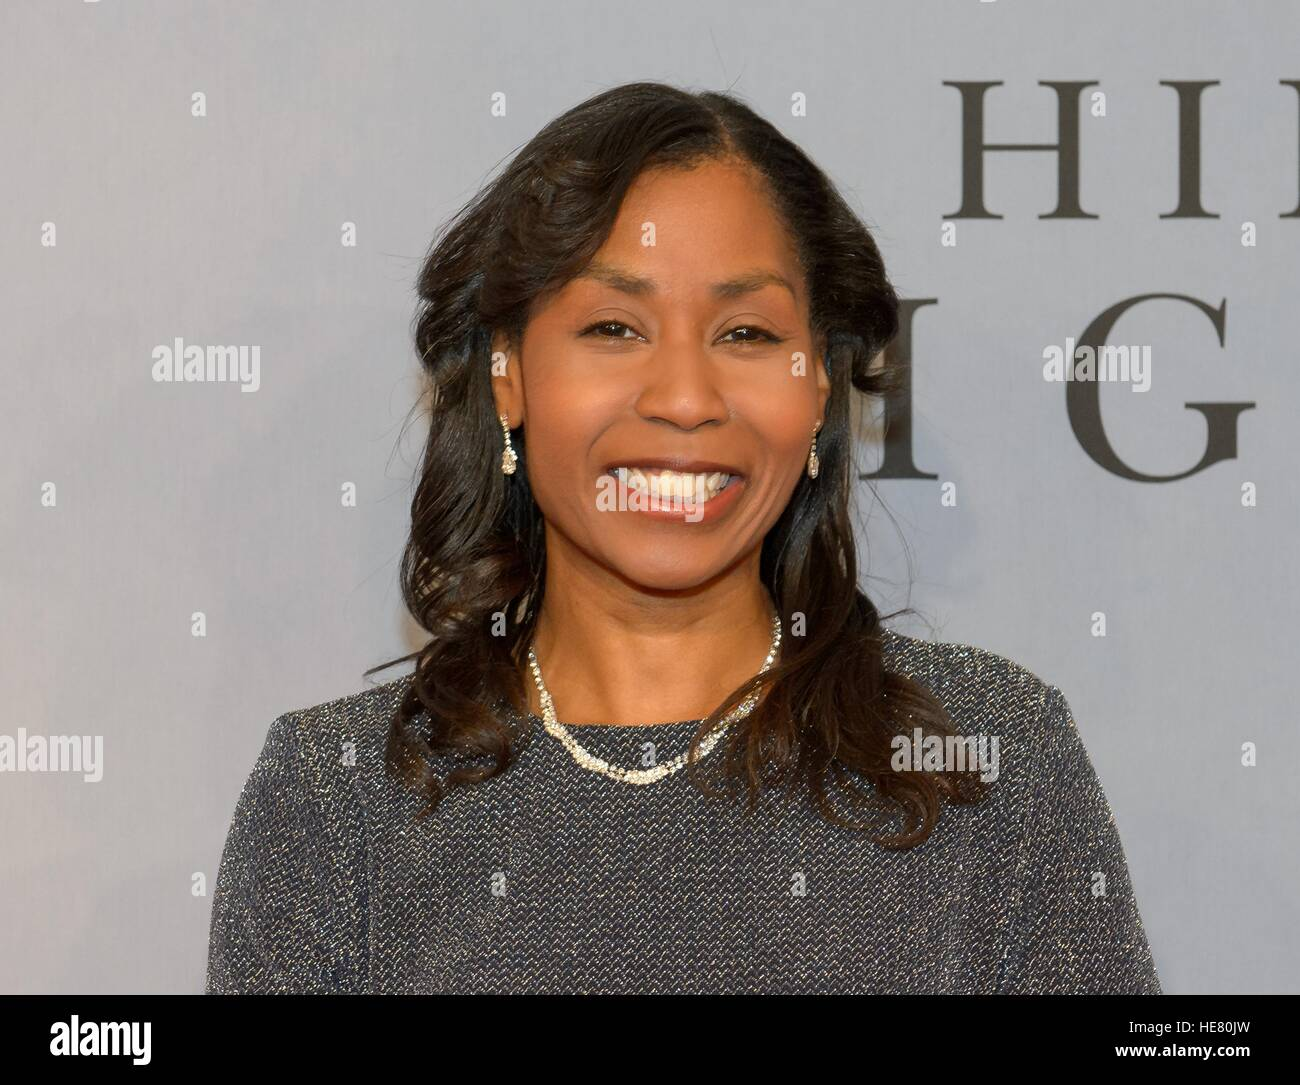 NASA astronaut Stephanie Wilson walks the red carpet during the global celebration event for the film Hidden Figures - Stock Image